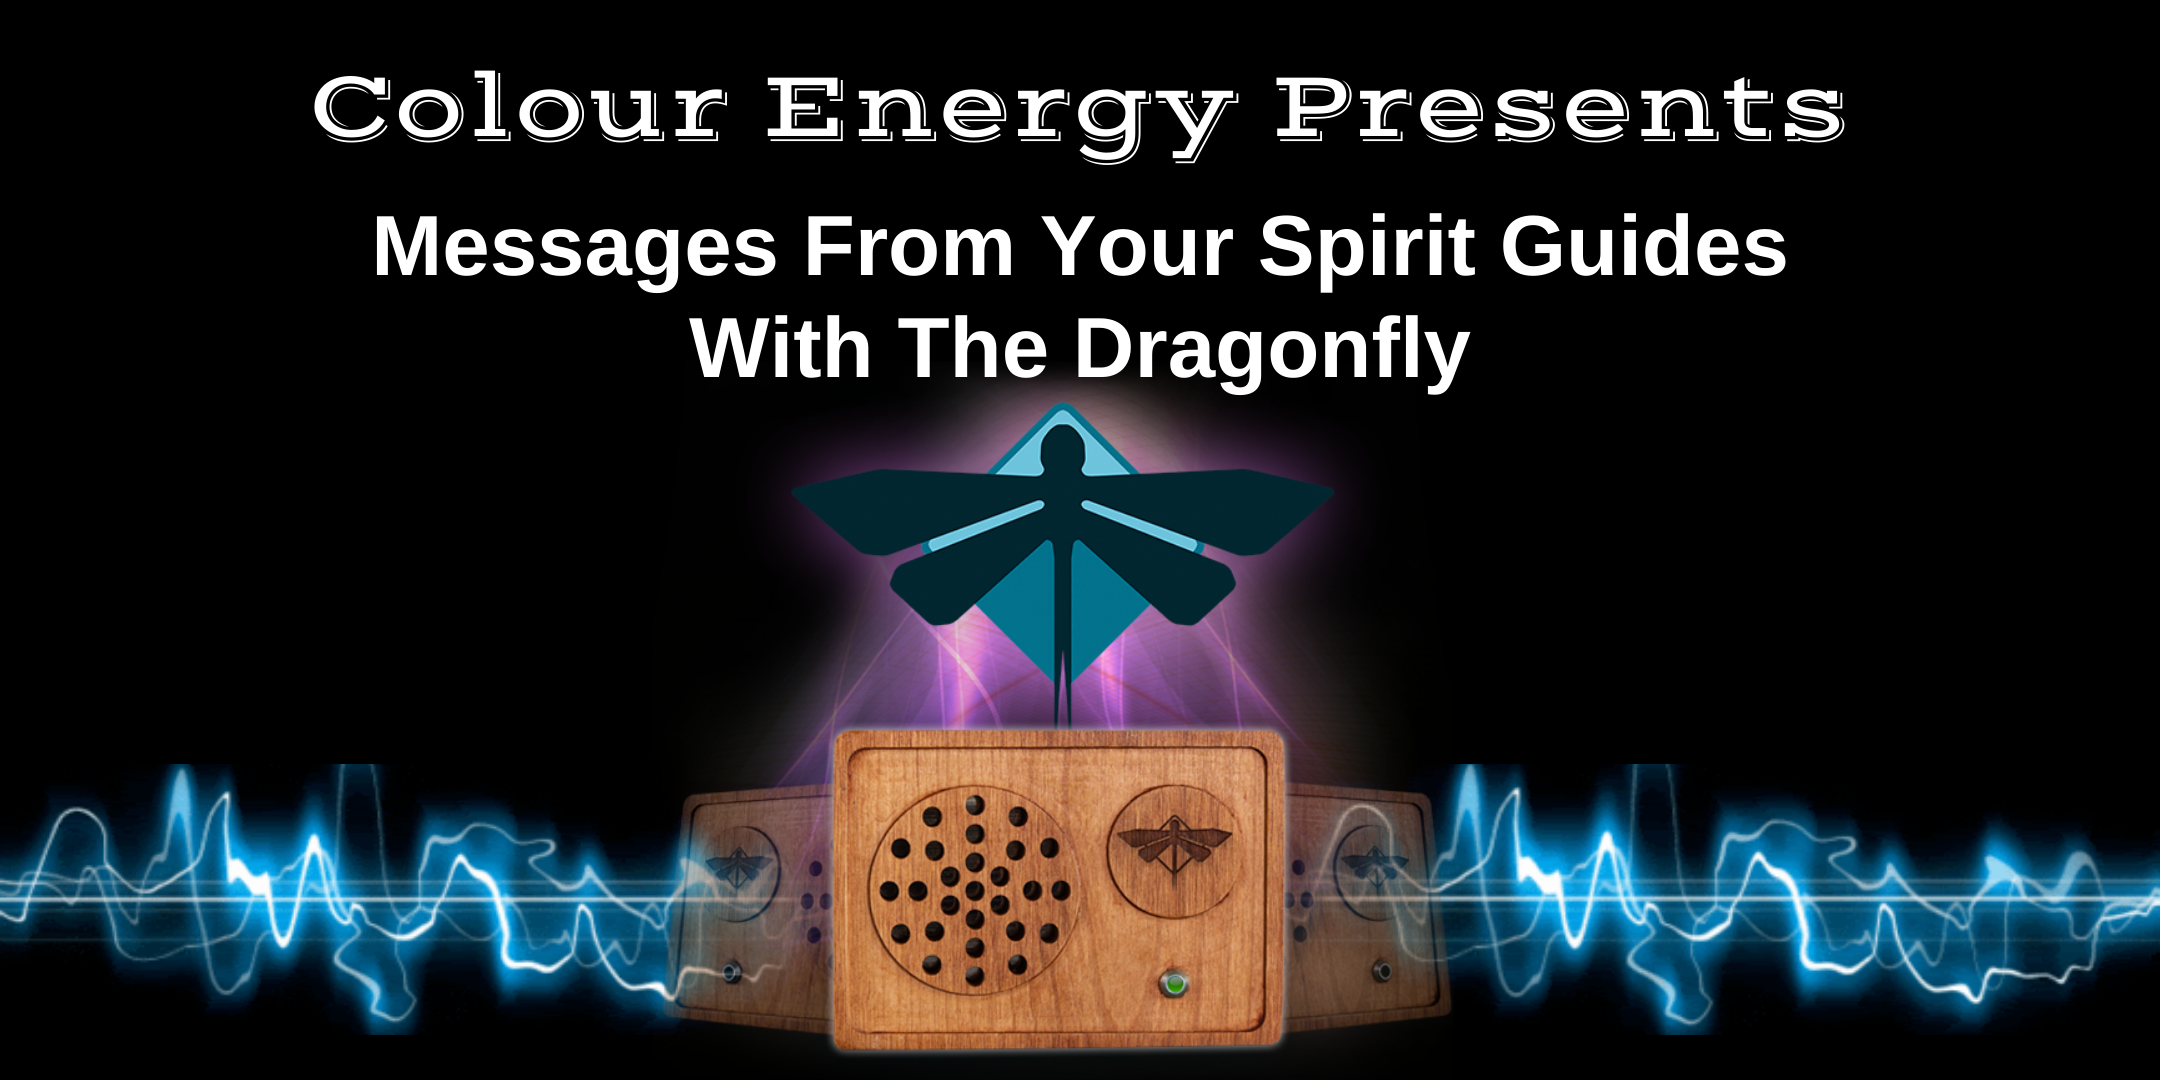 Messages From Your Spirit Guides With The Dragonfly